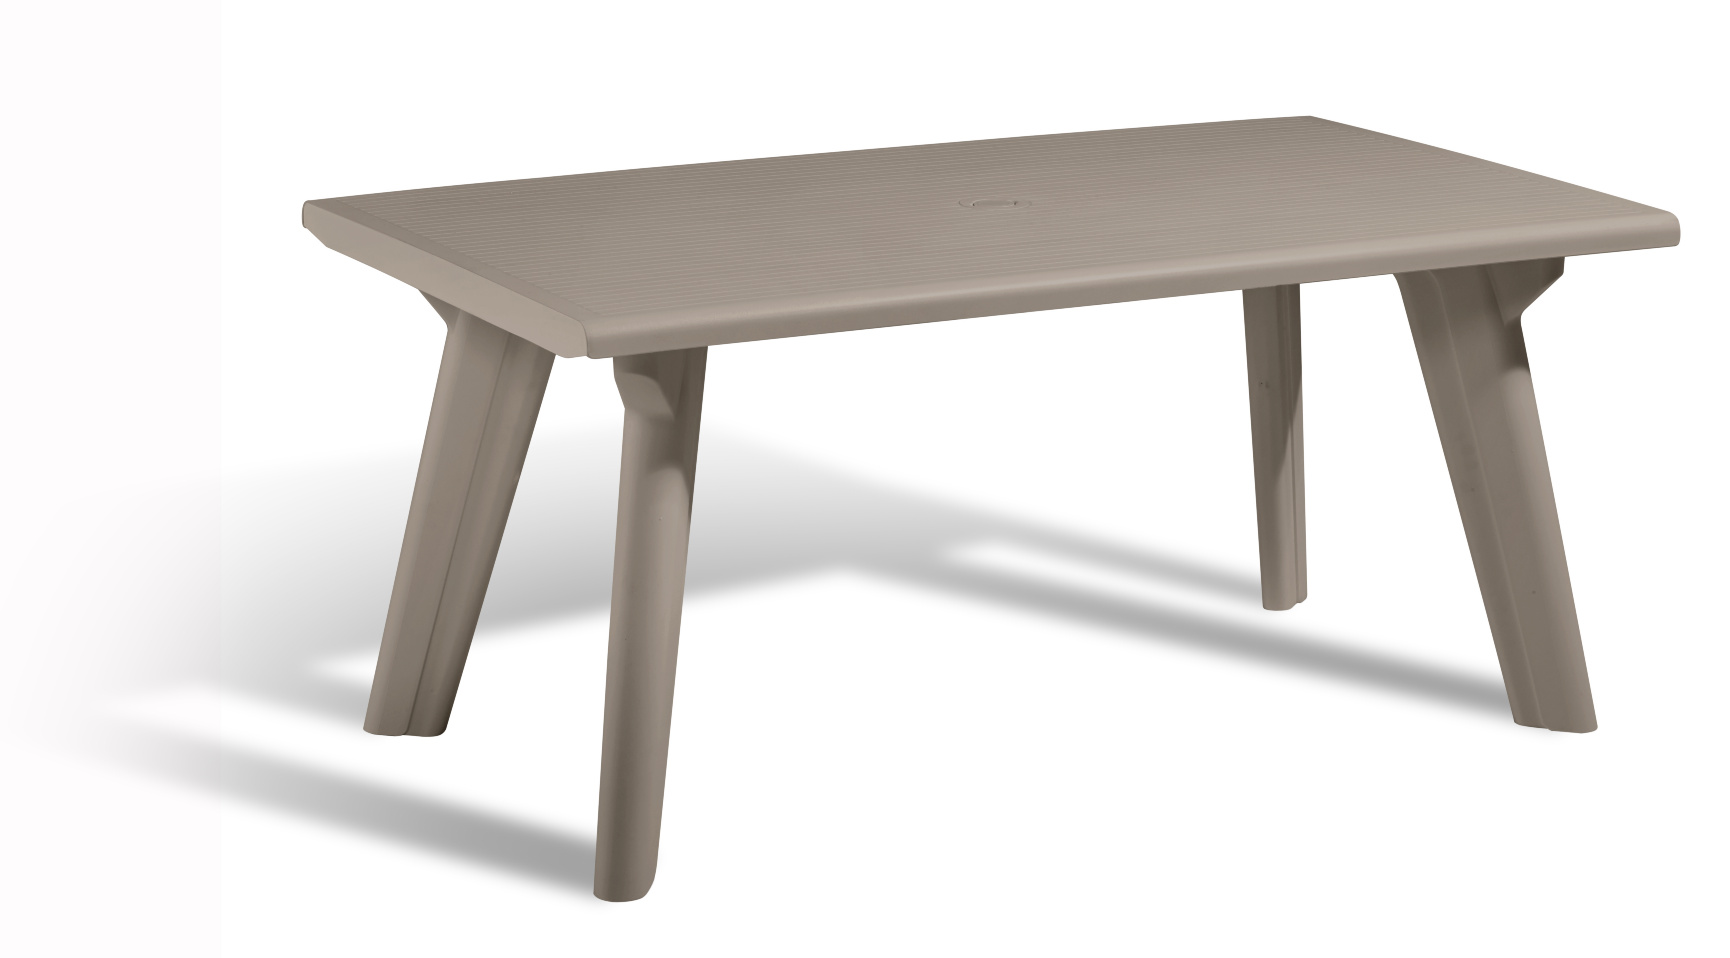 Table Jardin Modulable Table De Jardin Modulable Maison Design Wiblia